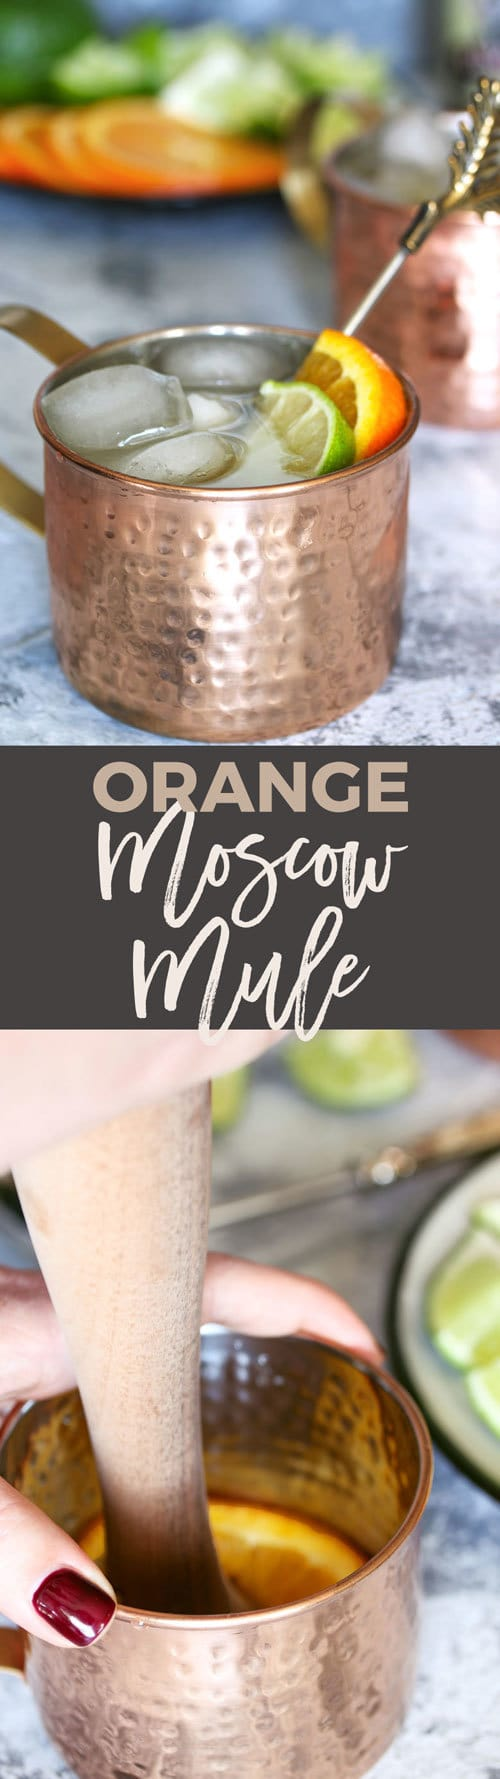 orange Moscow mule pin